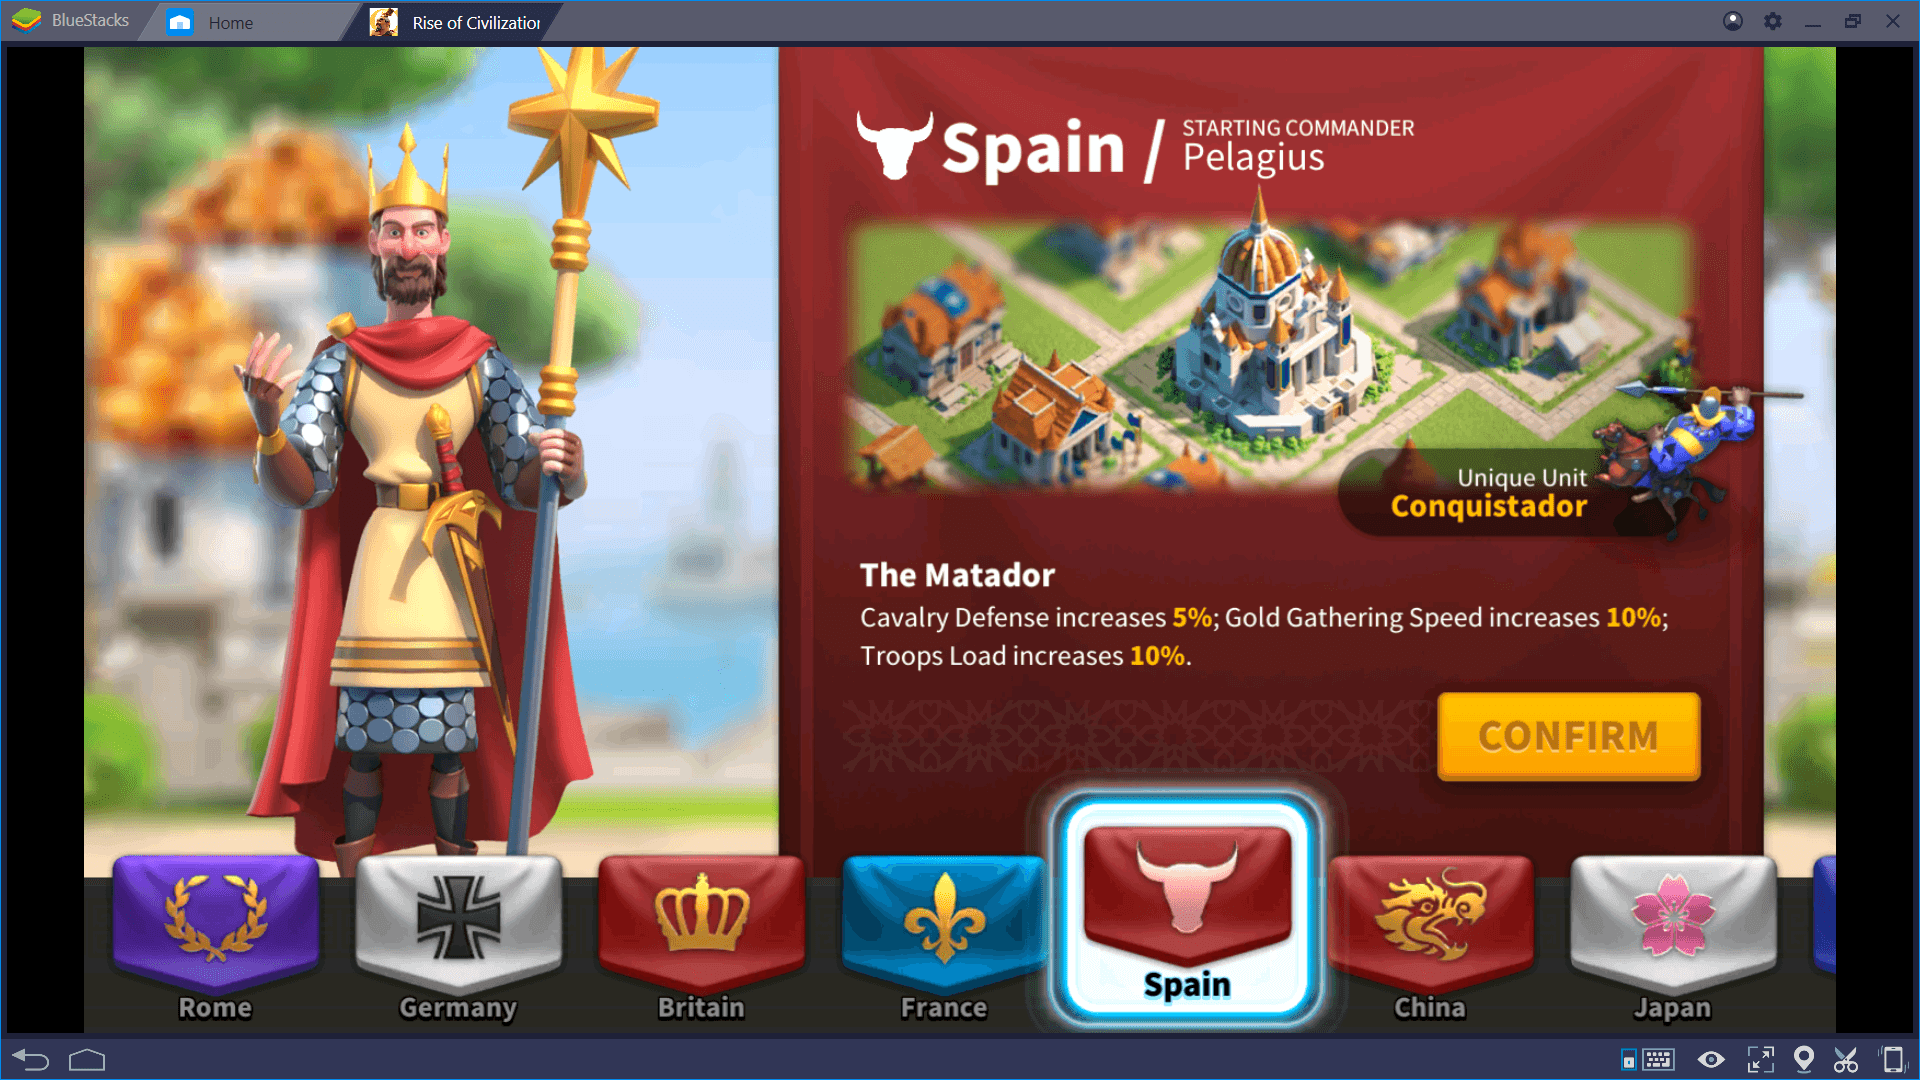 The Ultimate Guide to Choosing the Best Civilization in Rise